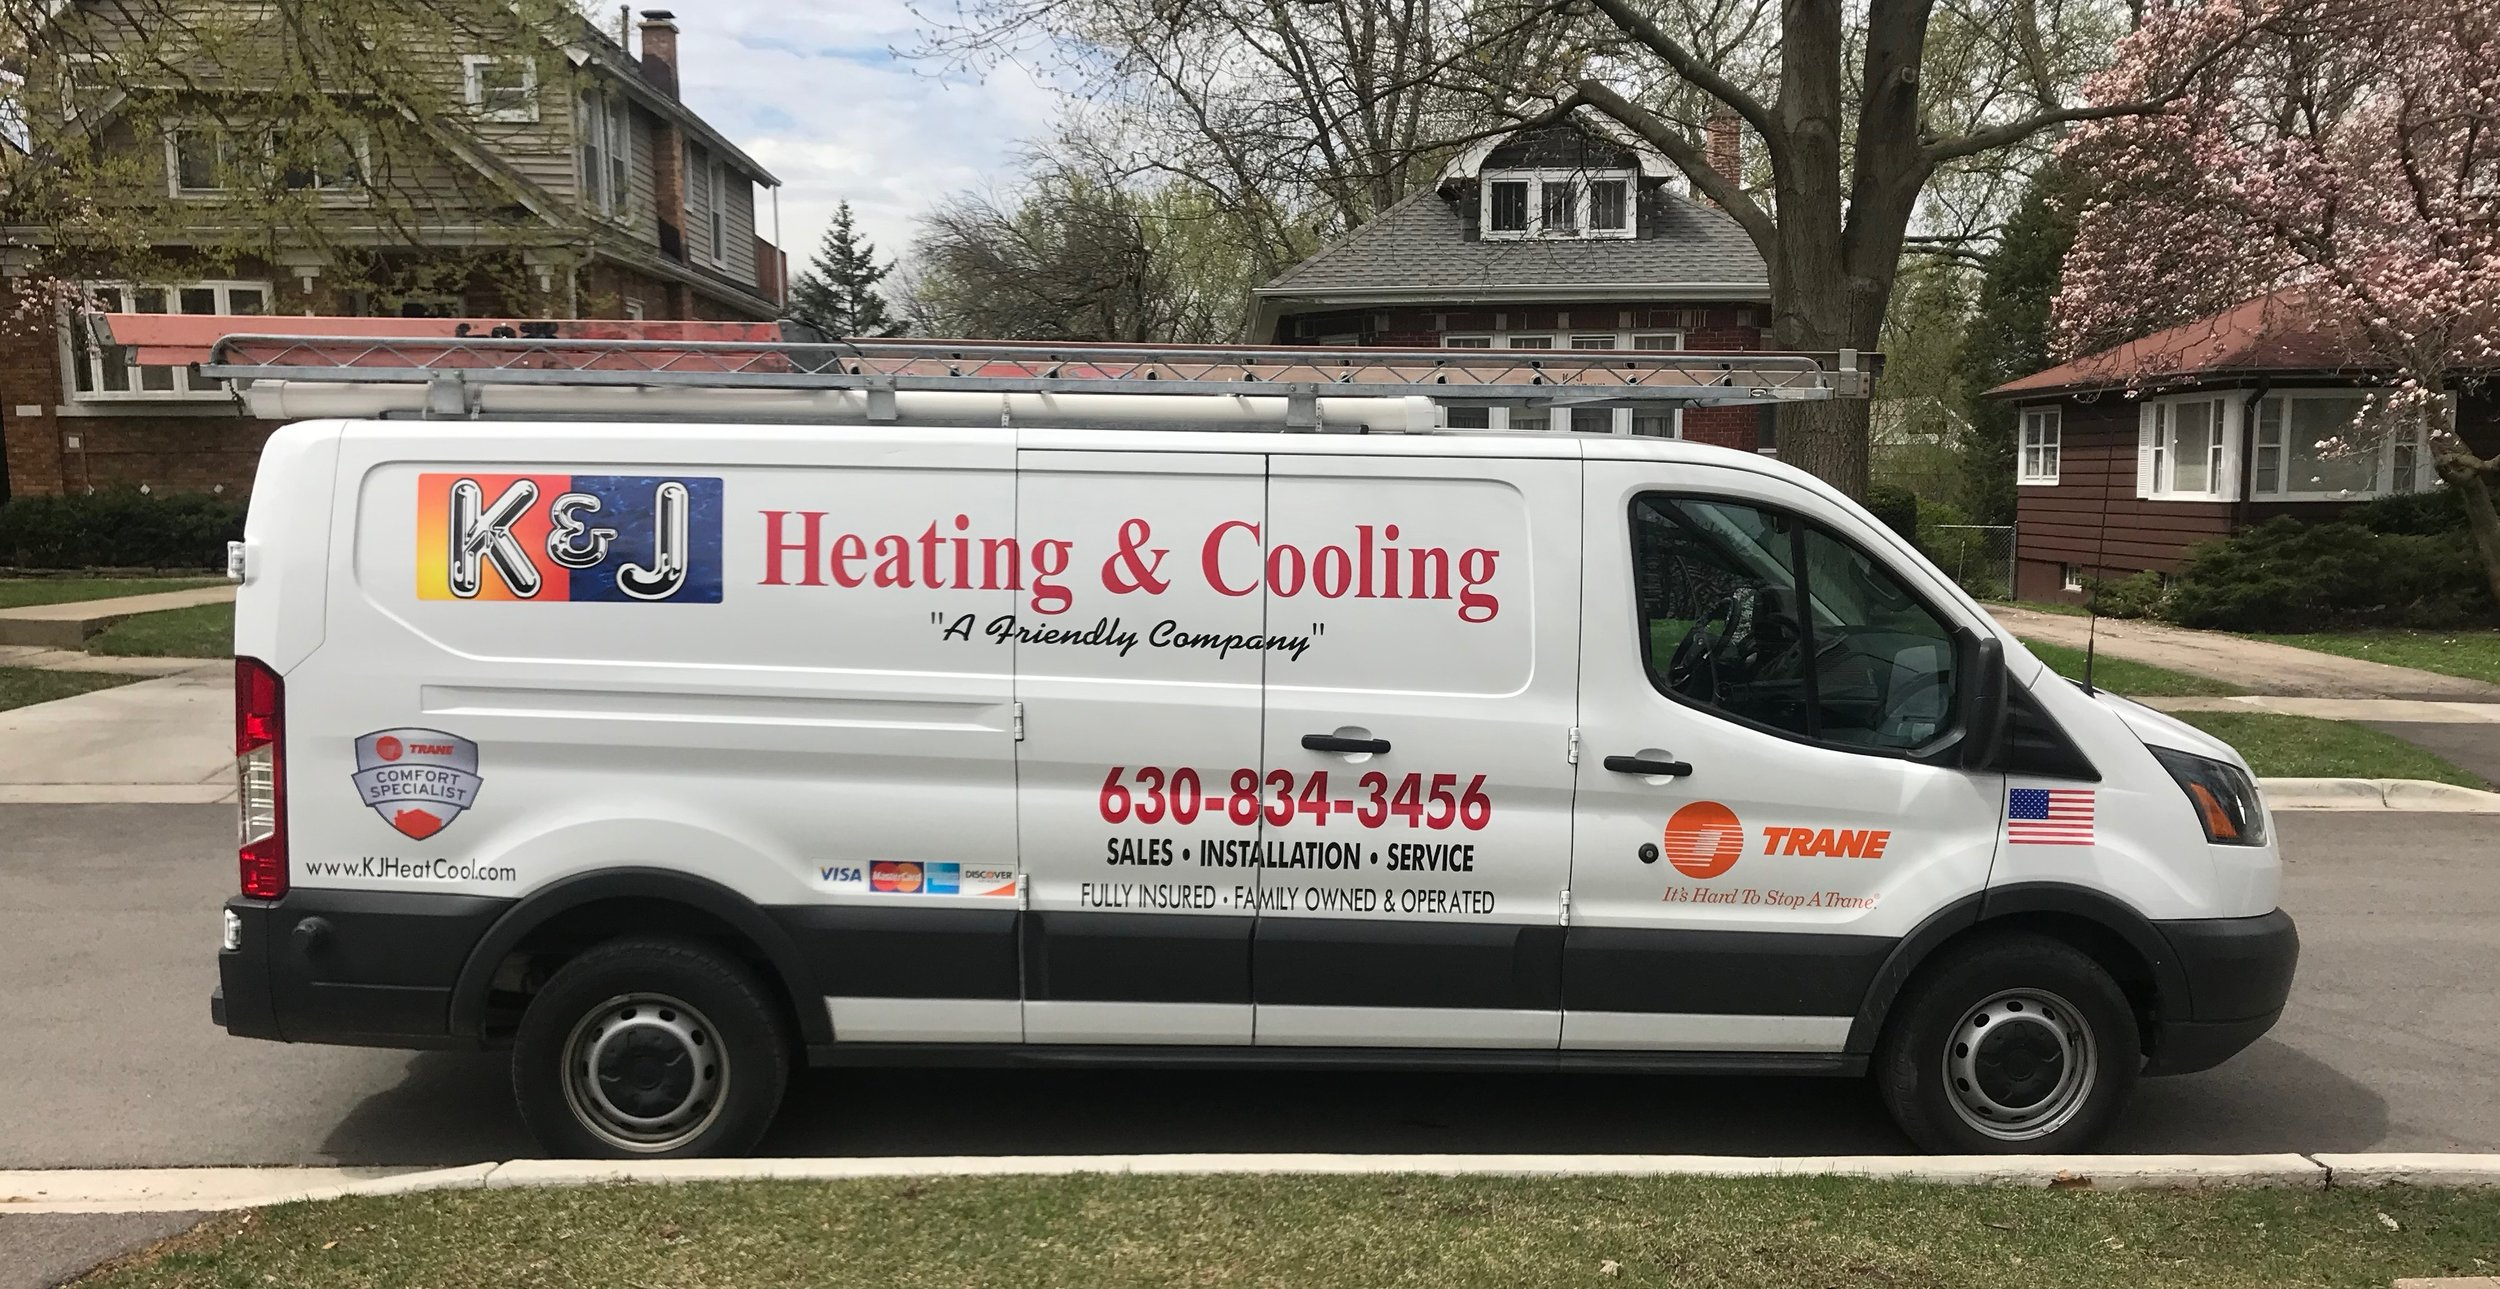 K & J Heating and Cooling, Inc. HVAC service van fully stocked to install a new Furnace and AC